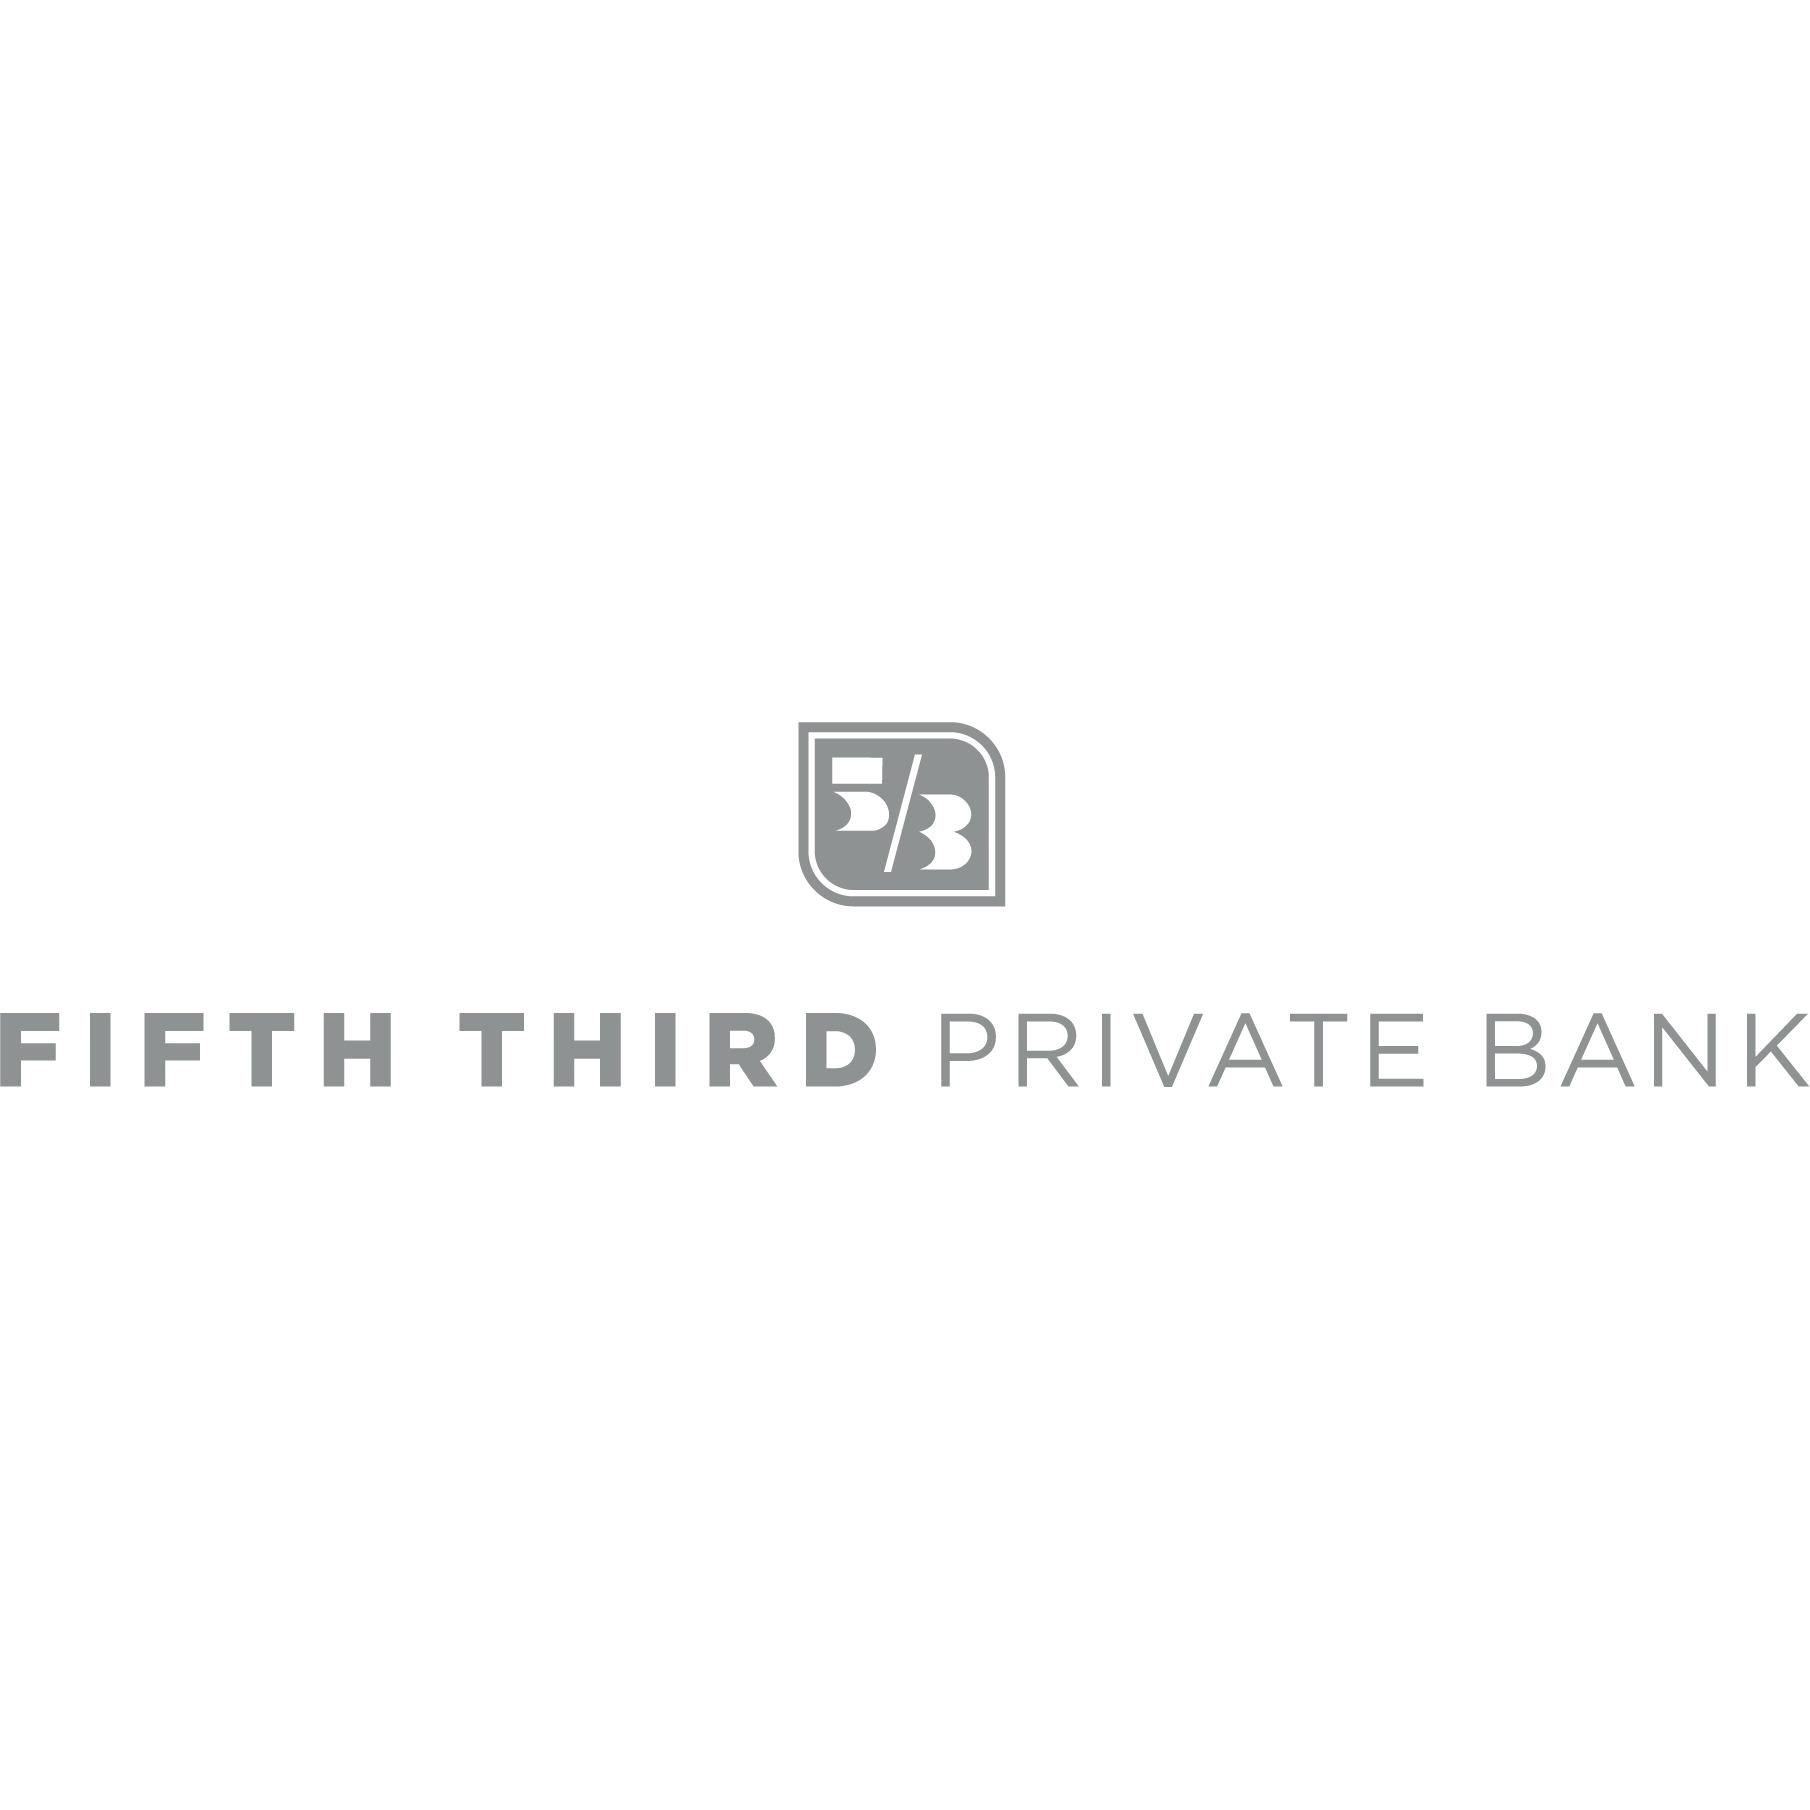 Fifth Third Private Bank - Timothy Hannahs